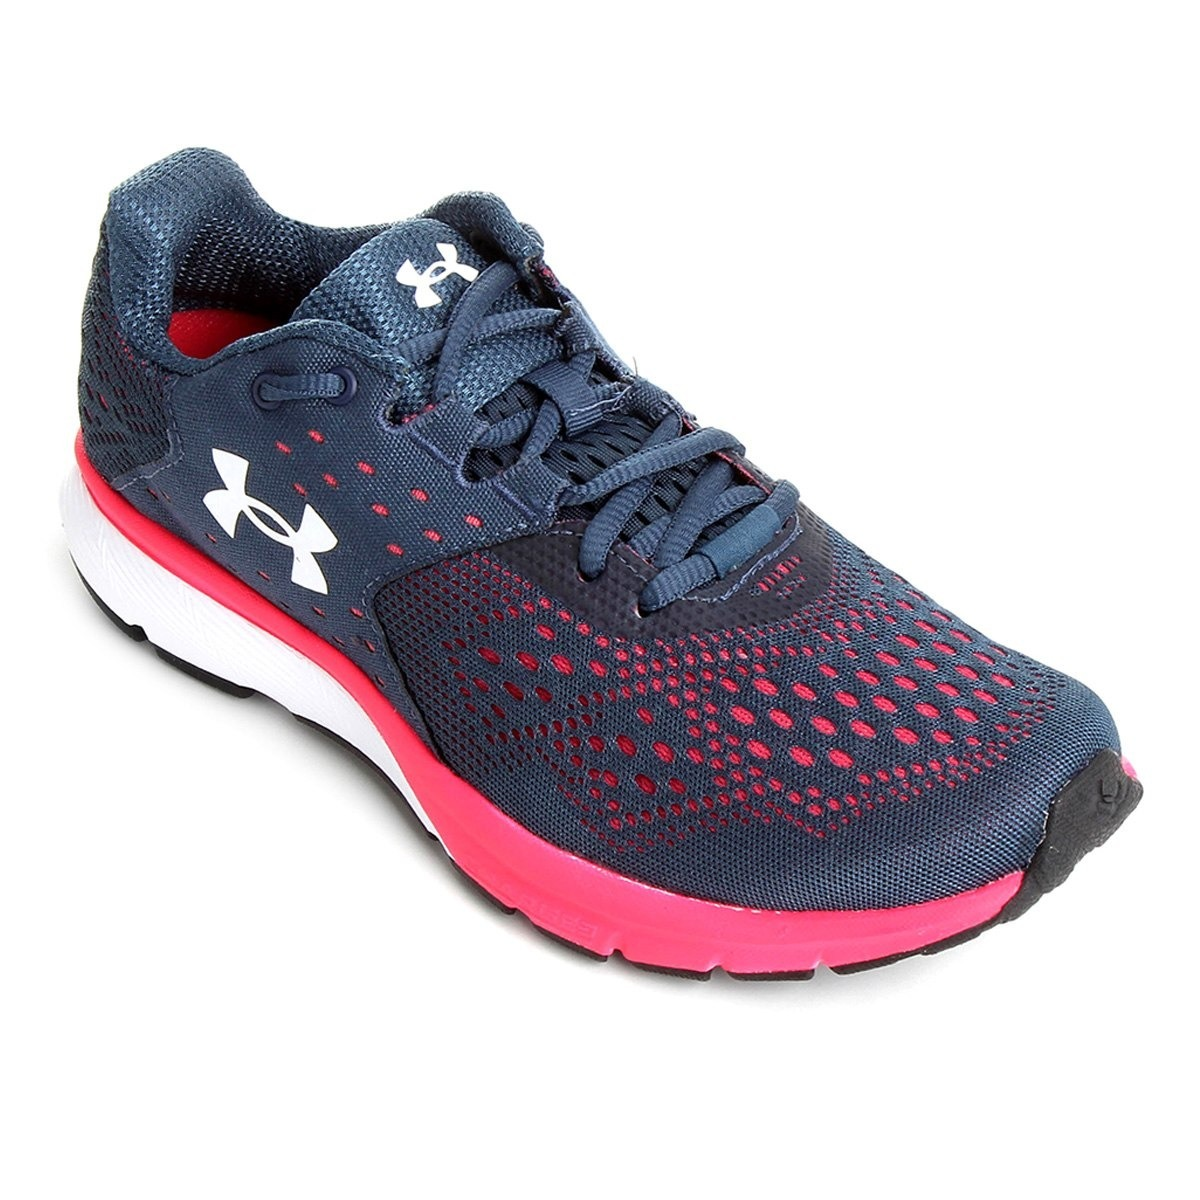 d3ae6f7613 tênis under armour charged rebel sa feminino - azul e rosa. Carregando zoom.